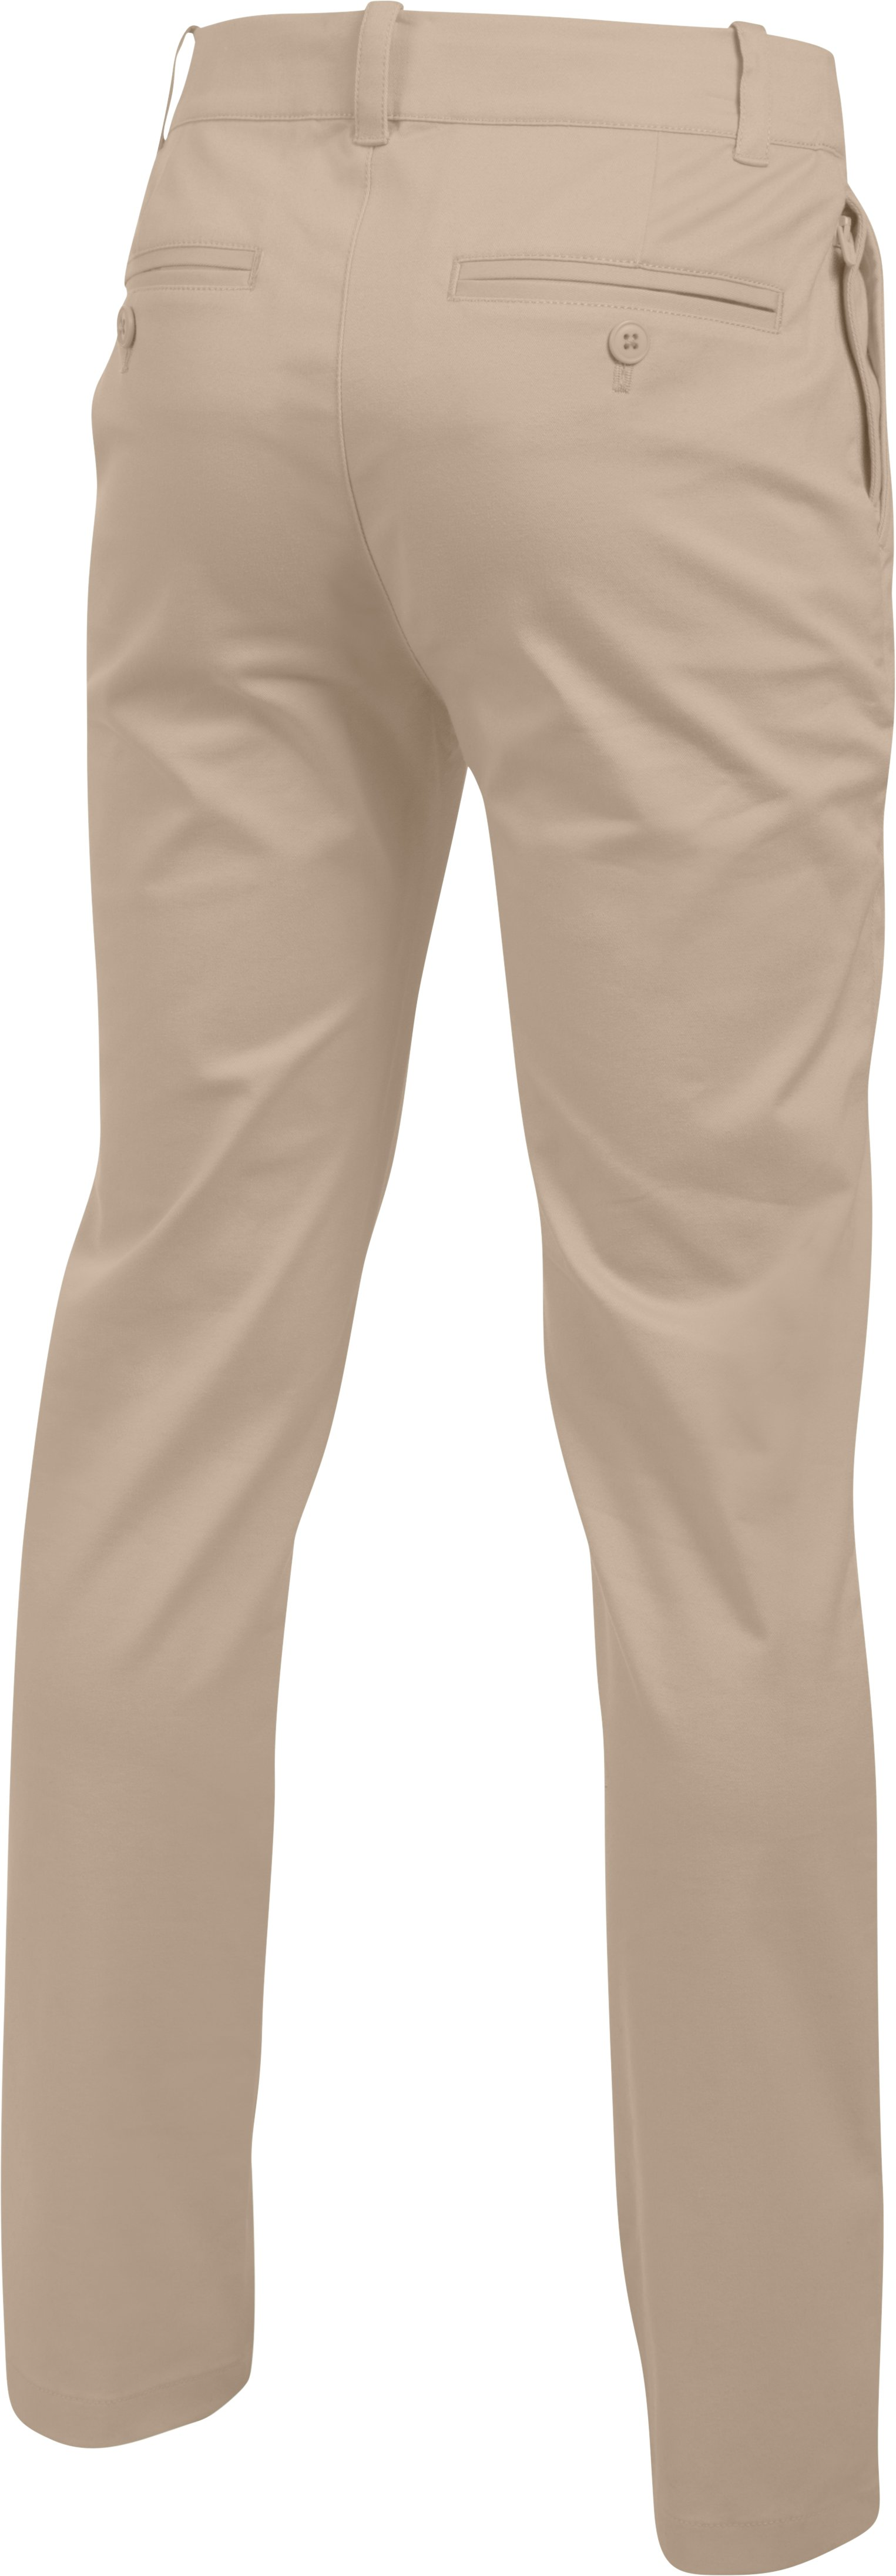 Boys' UA Uniform Chino Pants, Desert Sand,